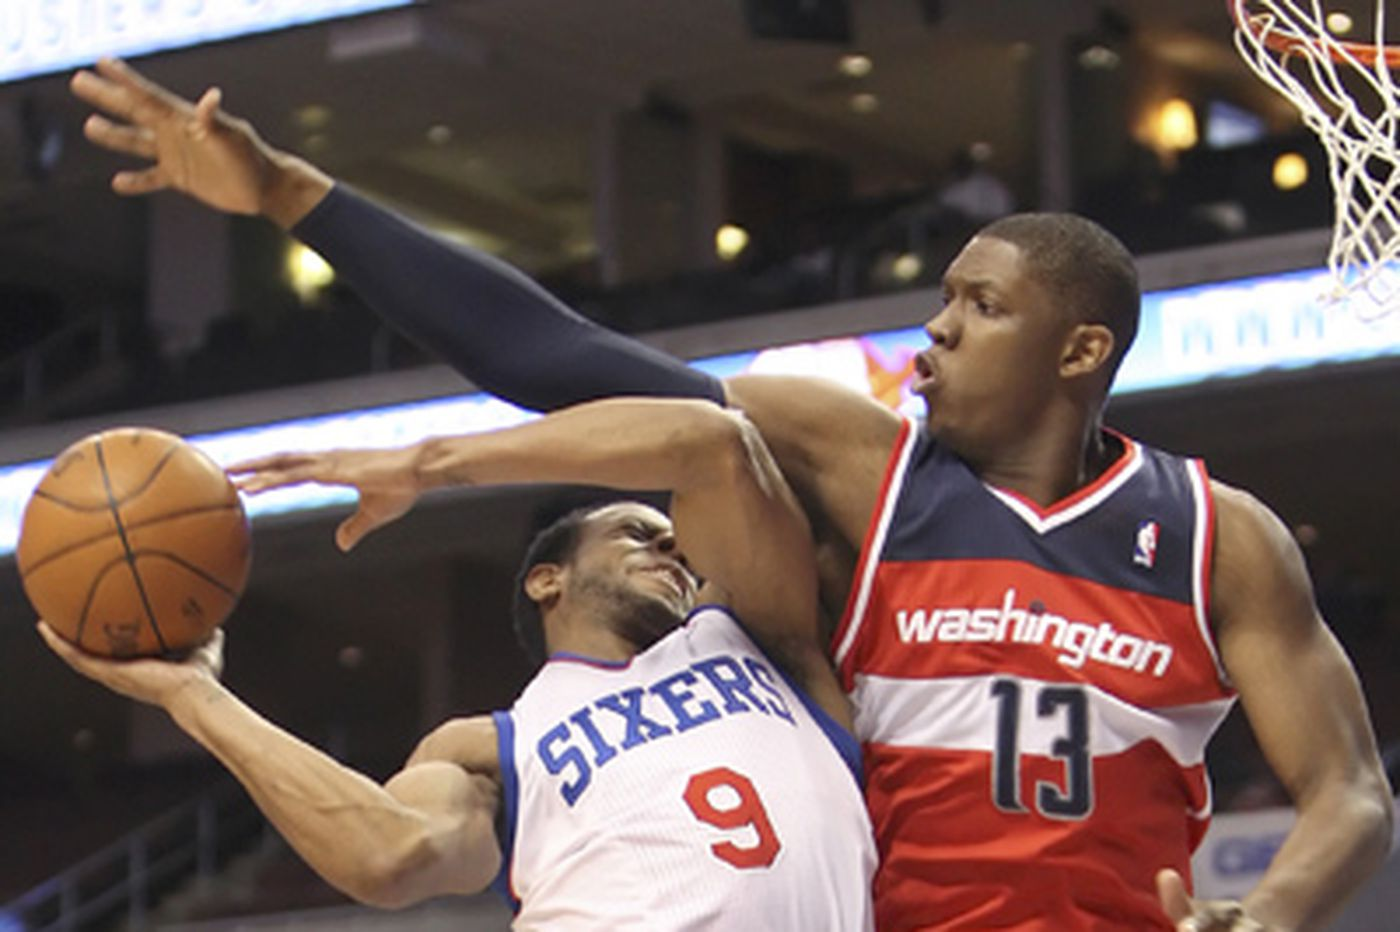 Pair contend Comcast-Spectacor owes $2M fee over Sixers sale